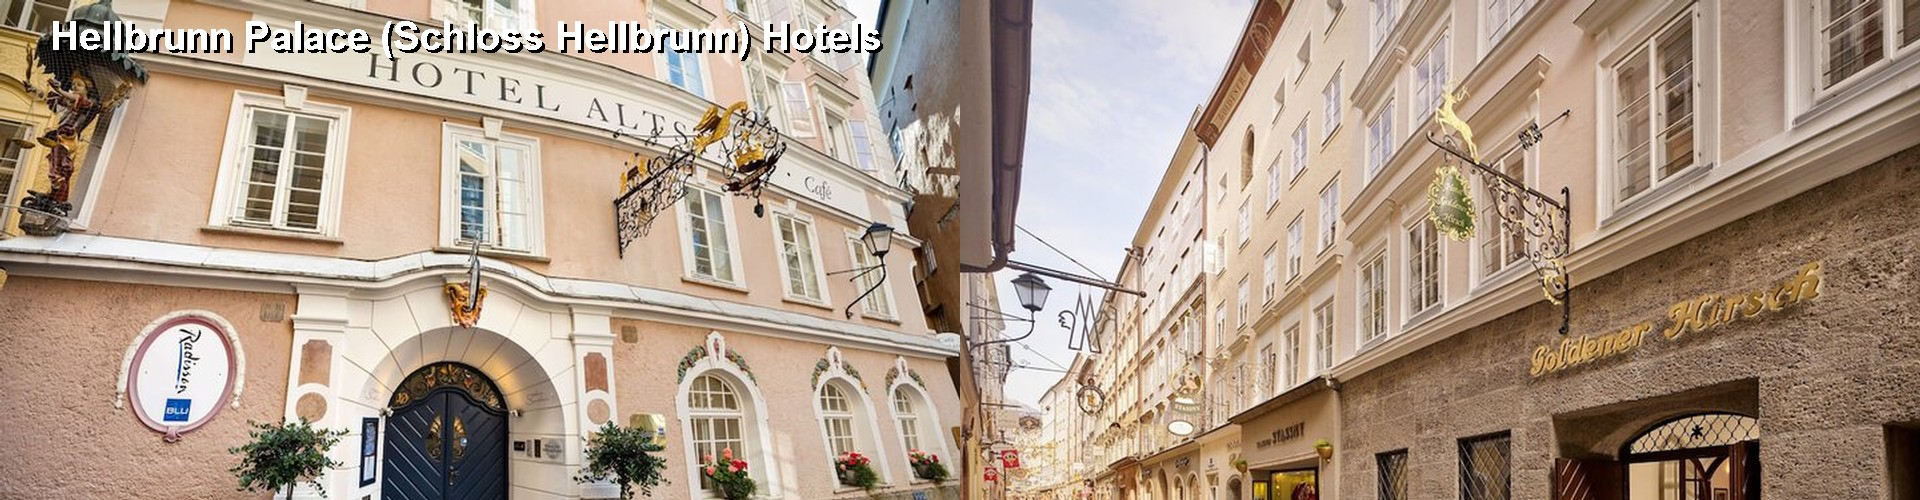 5 Best Hotels near Hellbrunn Palace (Schloss Hellbrunn)